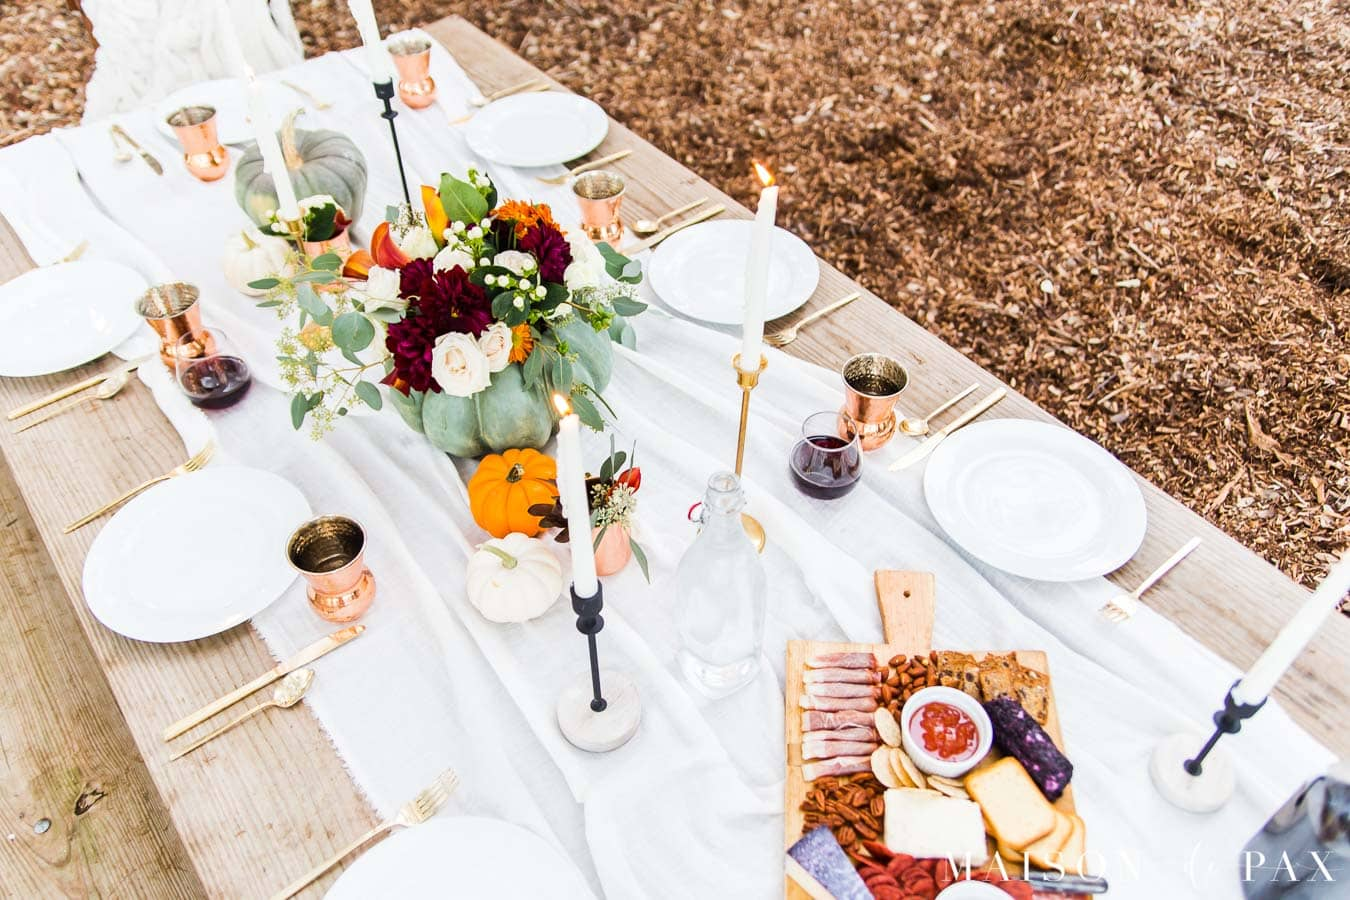 Thanksgiving table with pumpkins, metallics, and charcuterie board | Maison de Pax